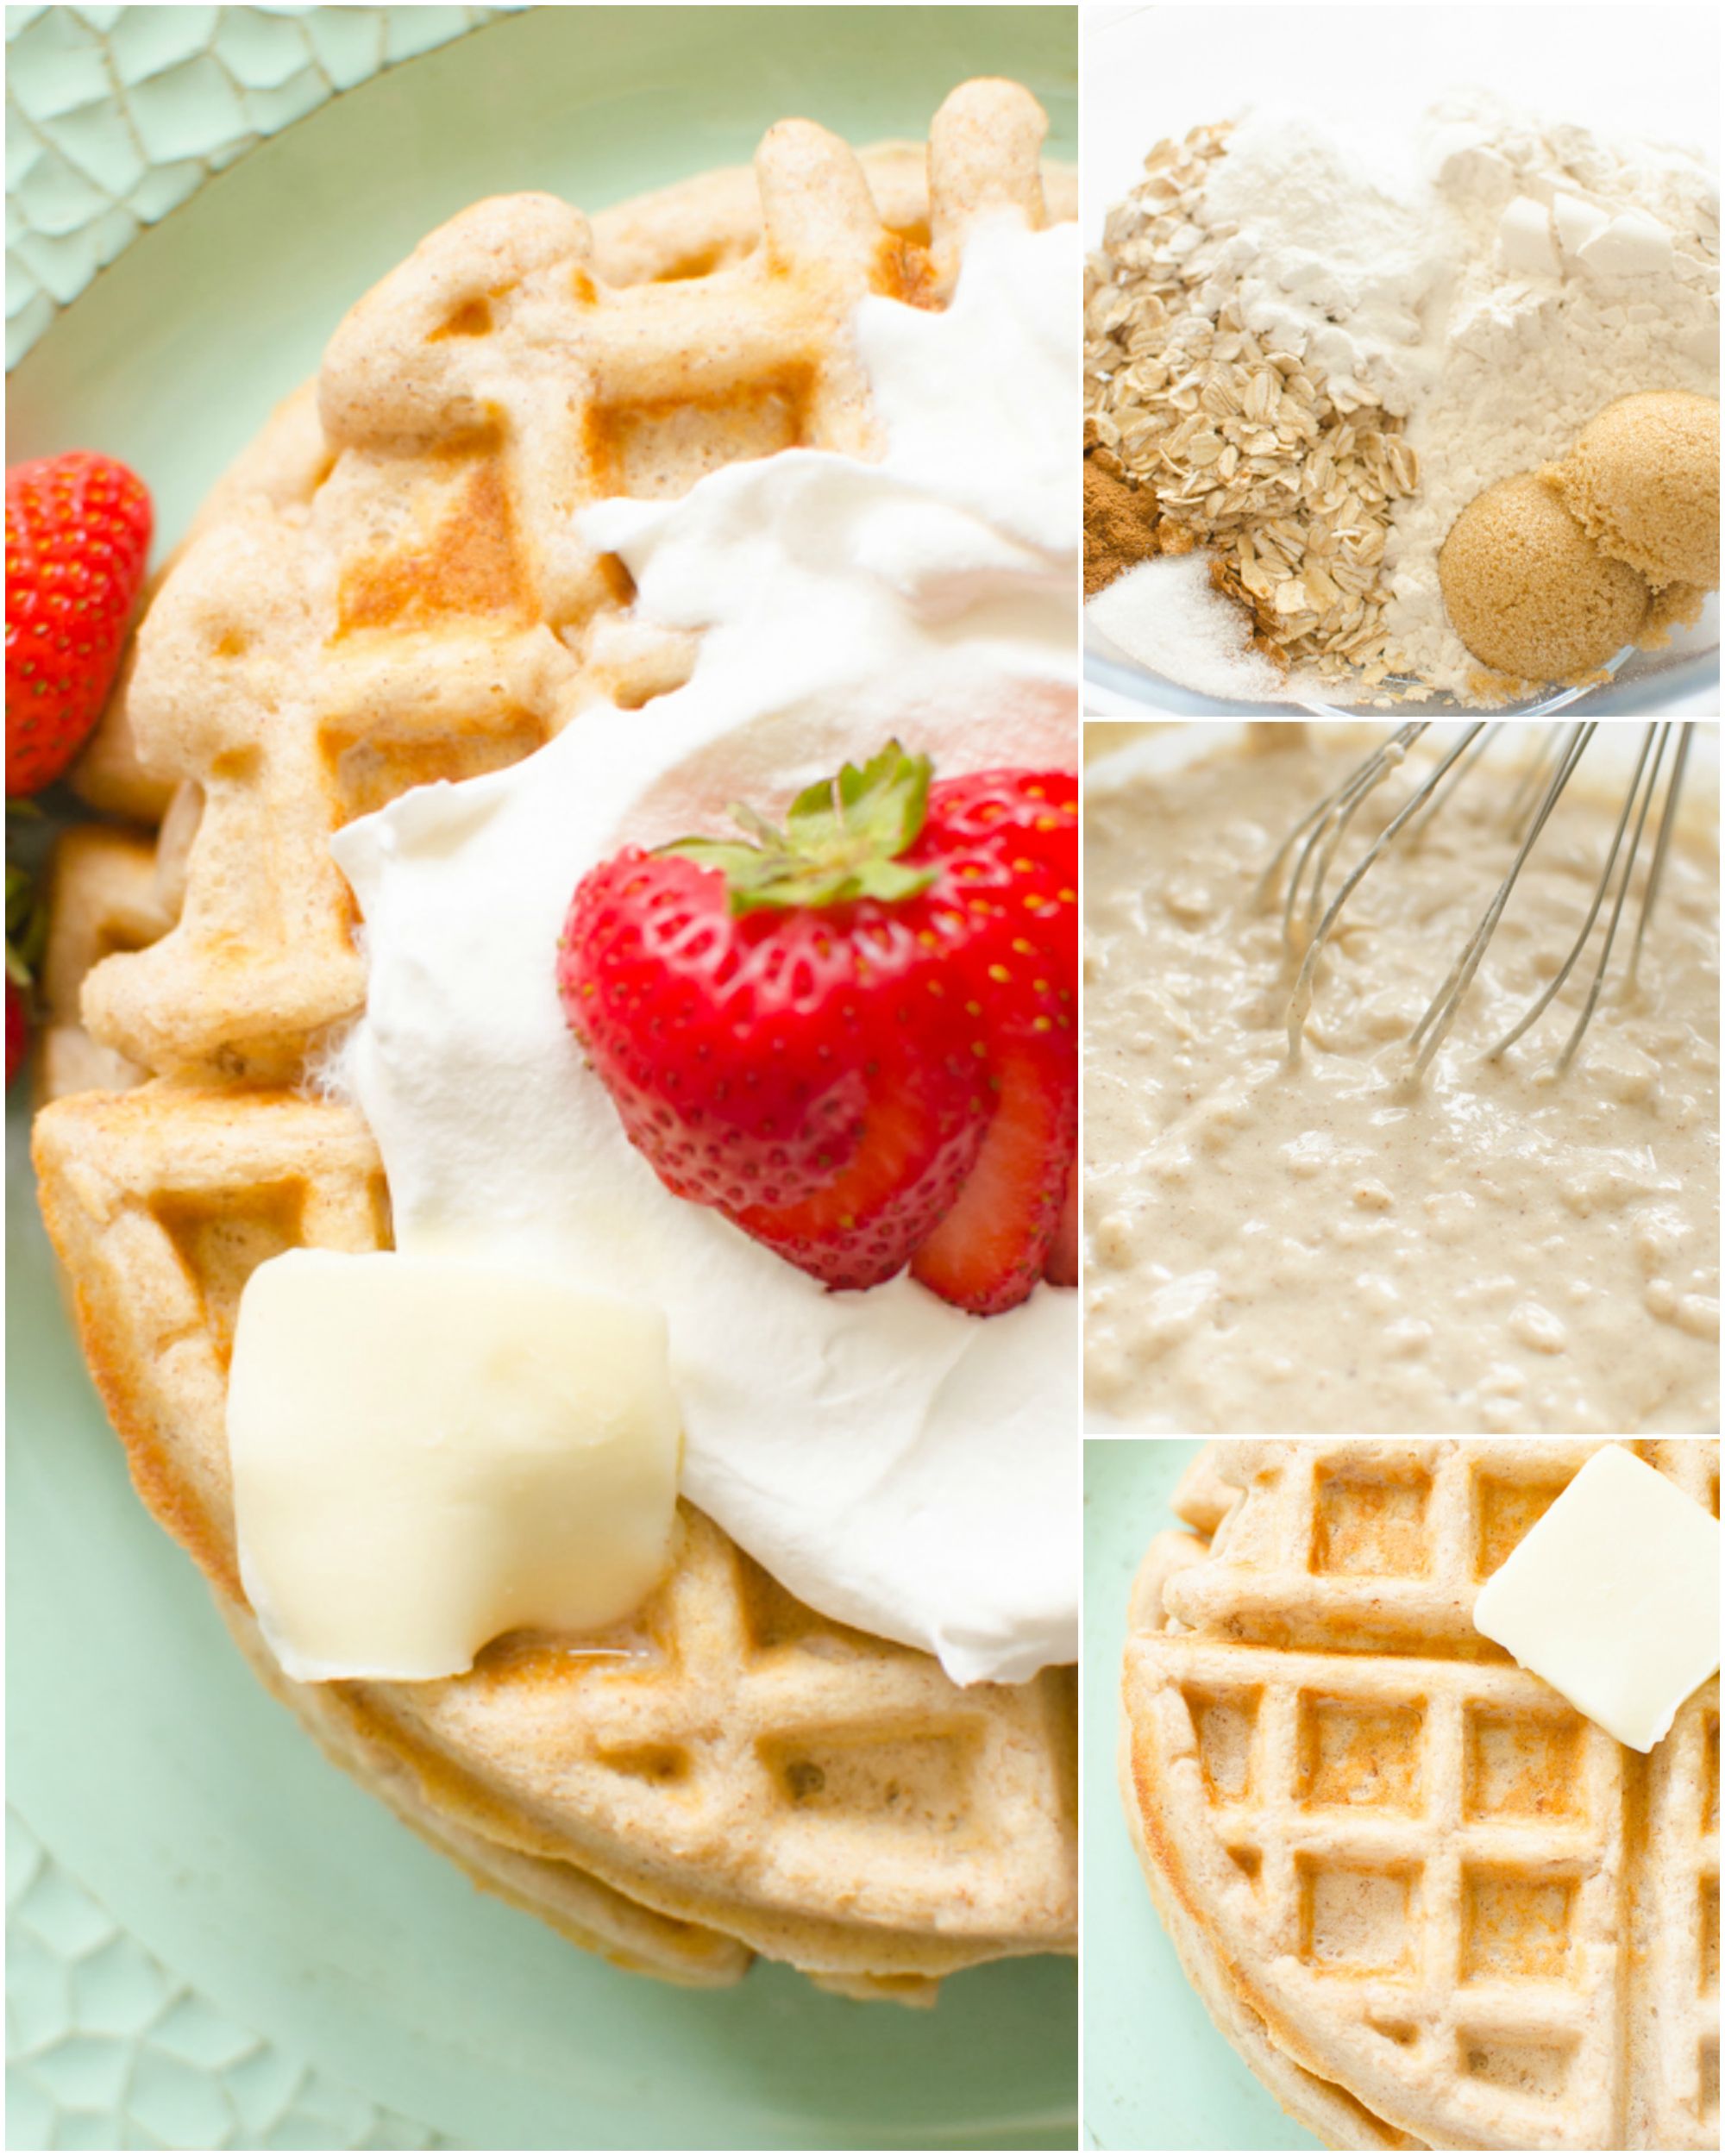 Oatmeal Waffles made fresh for breakfast with oats, cinnamon and several other basic ingredients that you likely have on hand. This oatmeal waffle recipe can be topped with berries, bananas and whipped cream for a delicious and hearty breakfast with lots of nutrition and flavor!